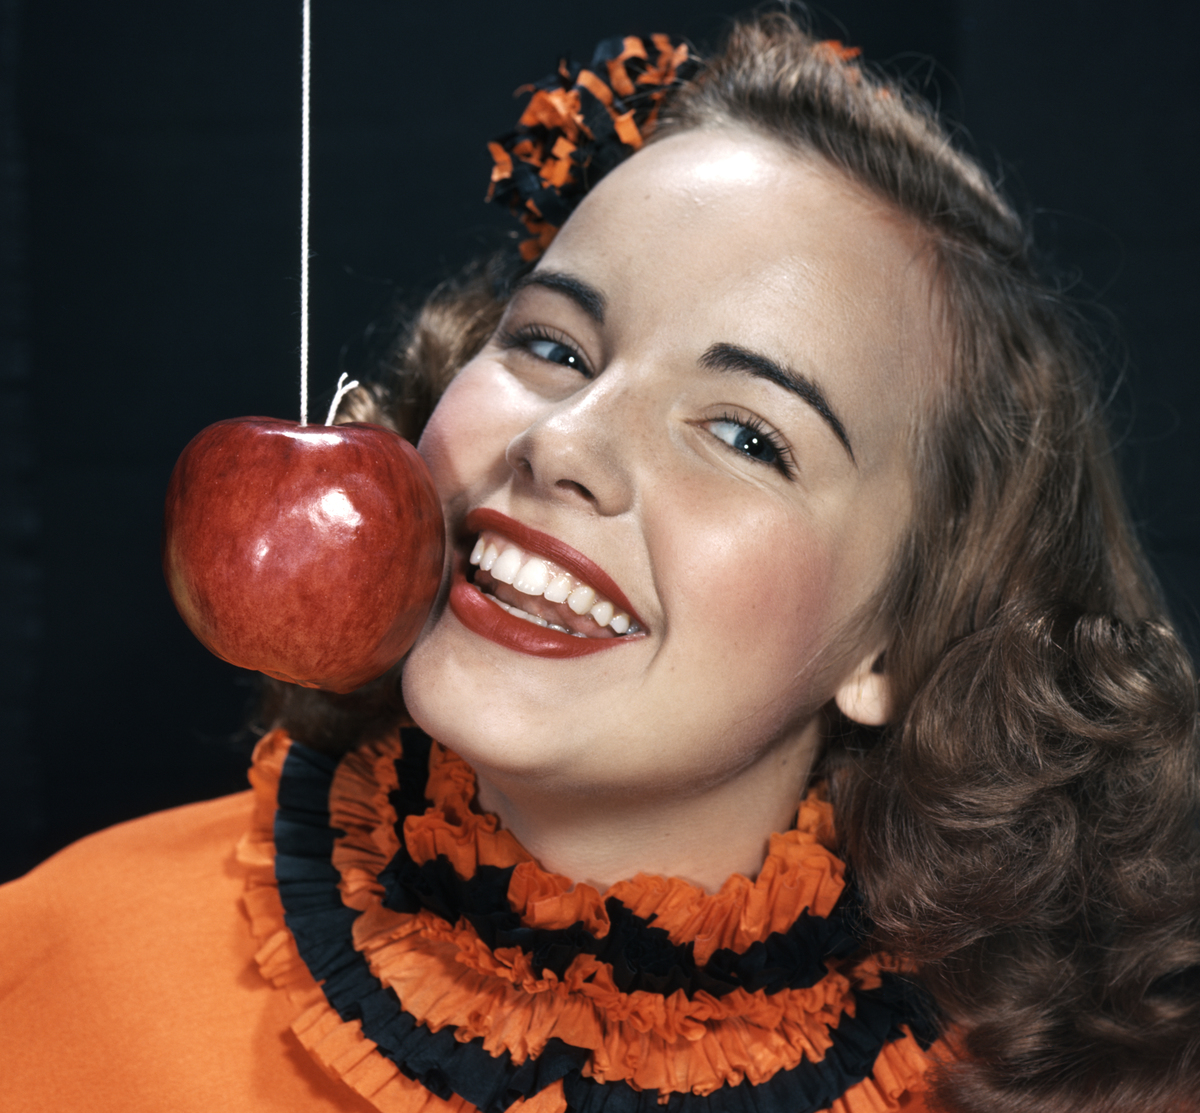 Girl eating apple on a string, Los Angeles, California, 1949.